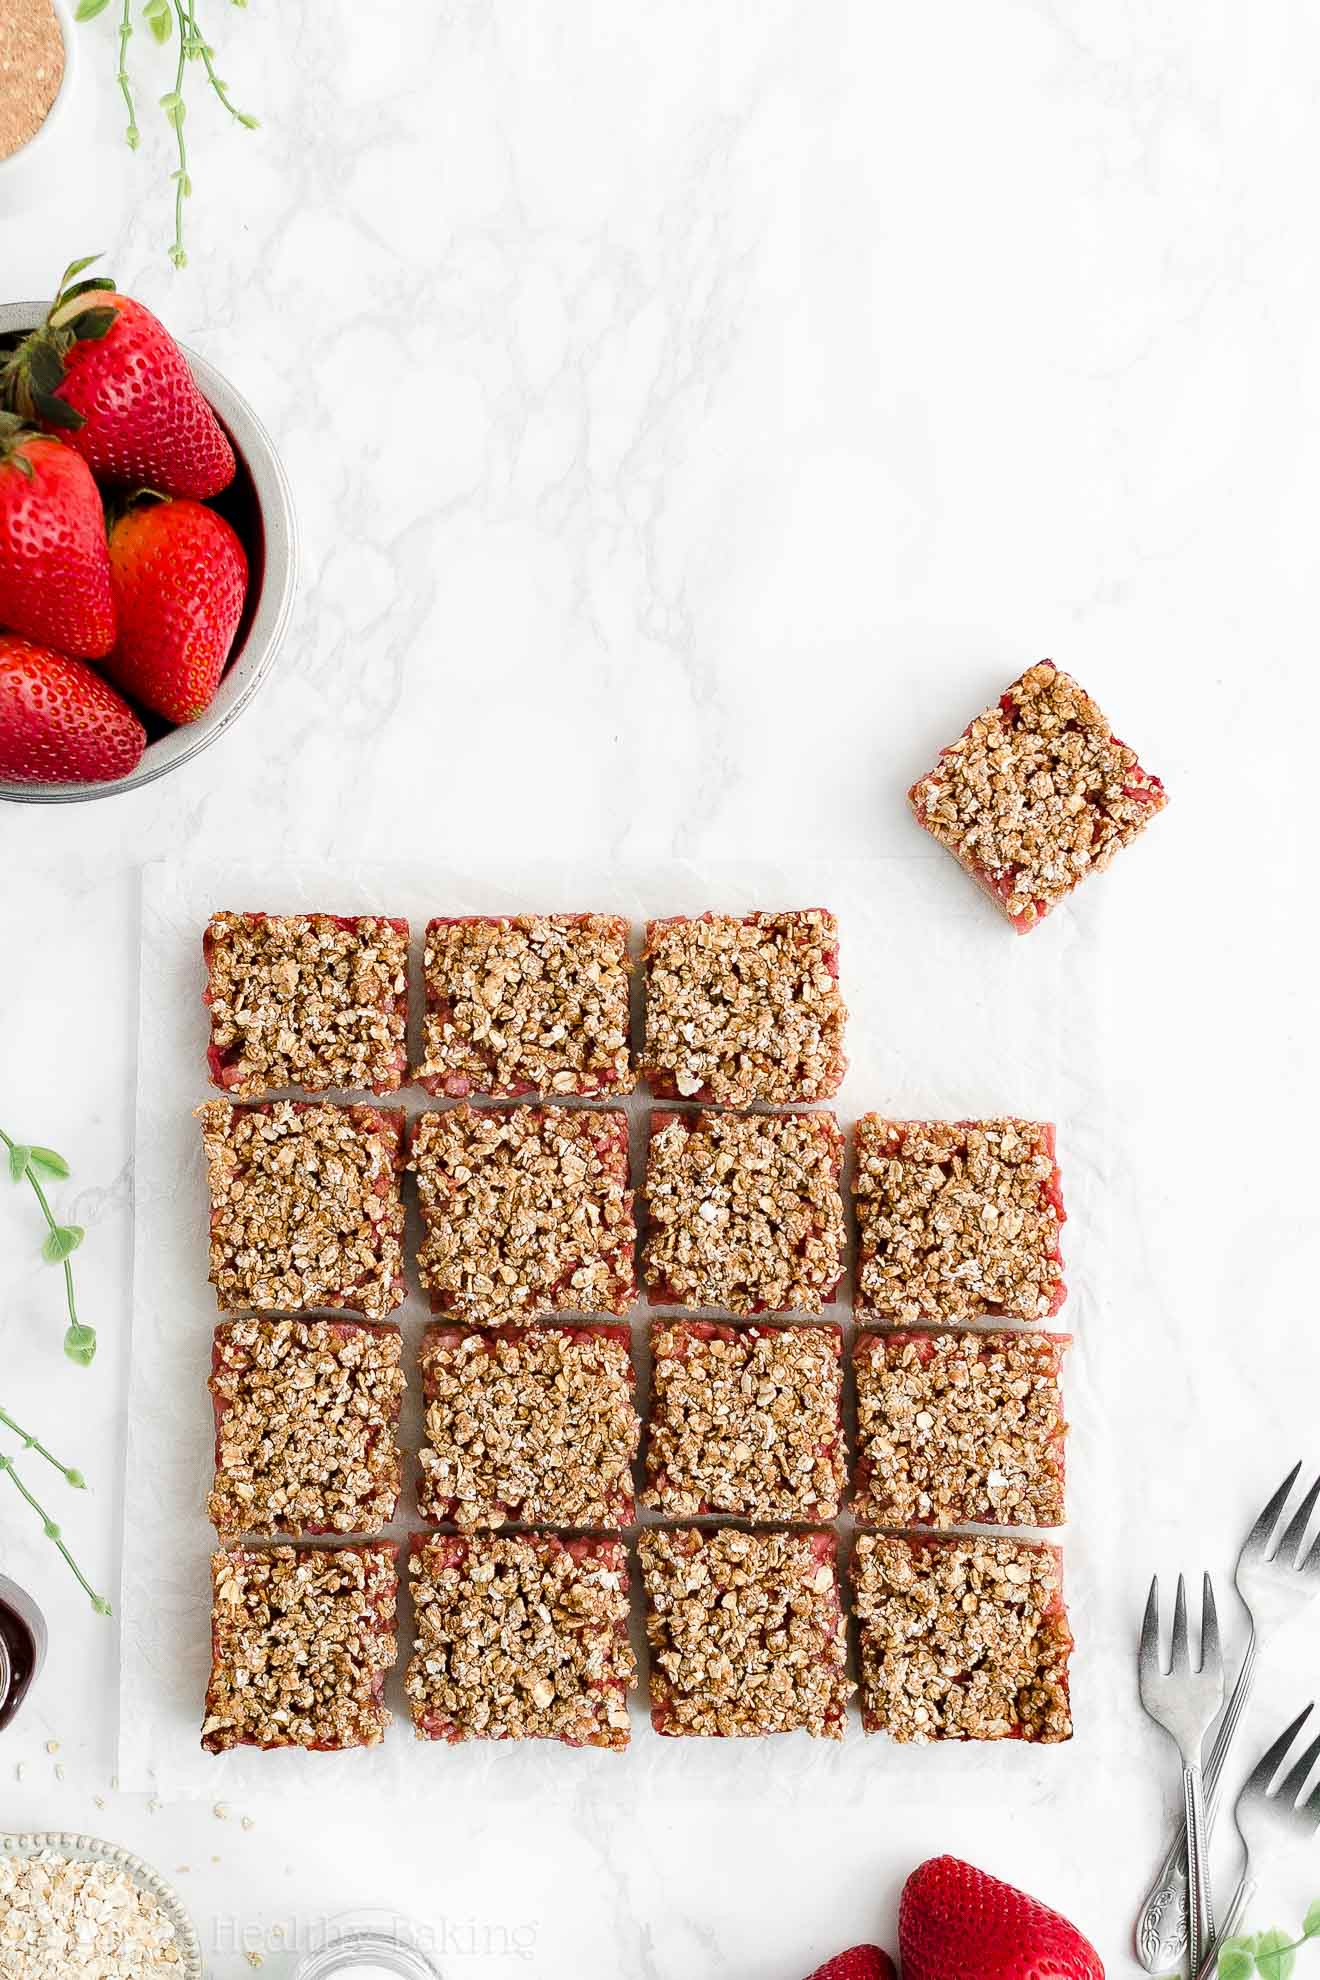 Best Easy Healthy Low Calorie Gluten Free Vegan Strawberry Oat Crumble Bars